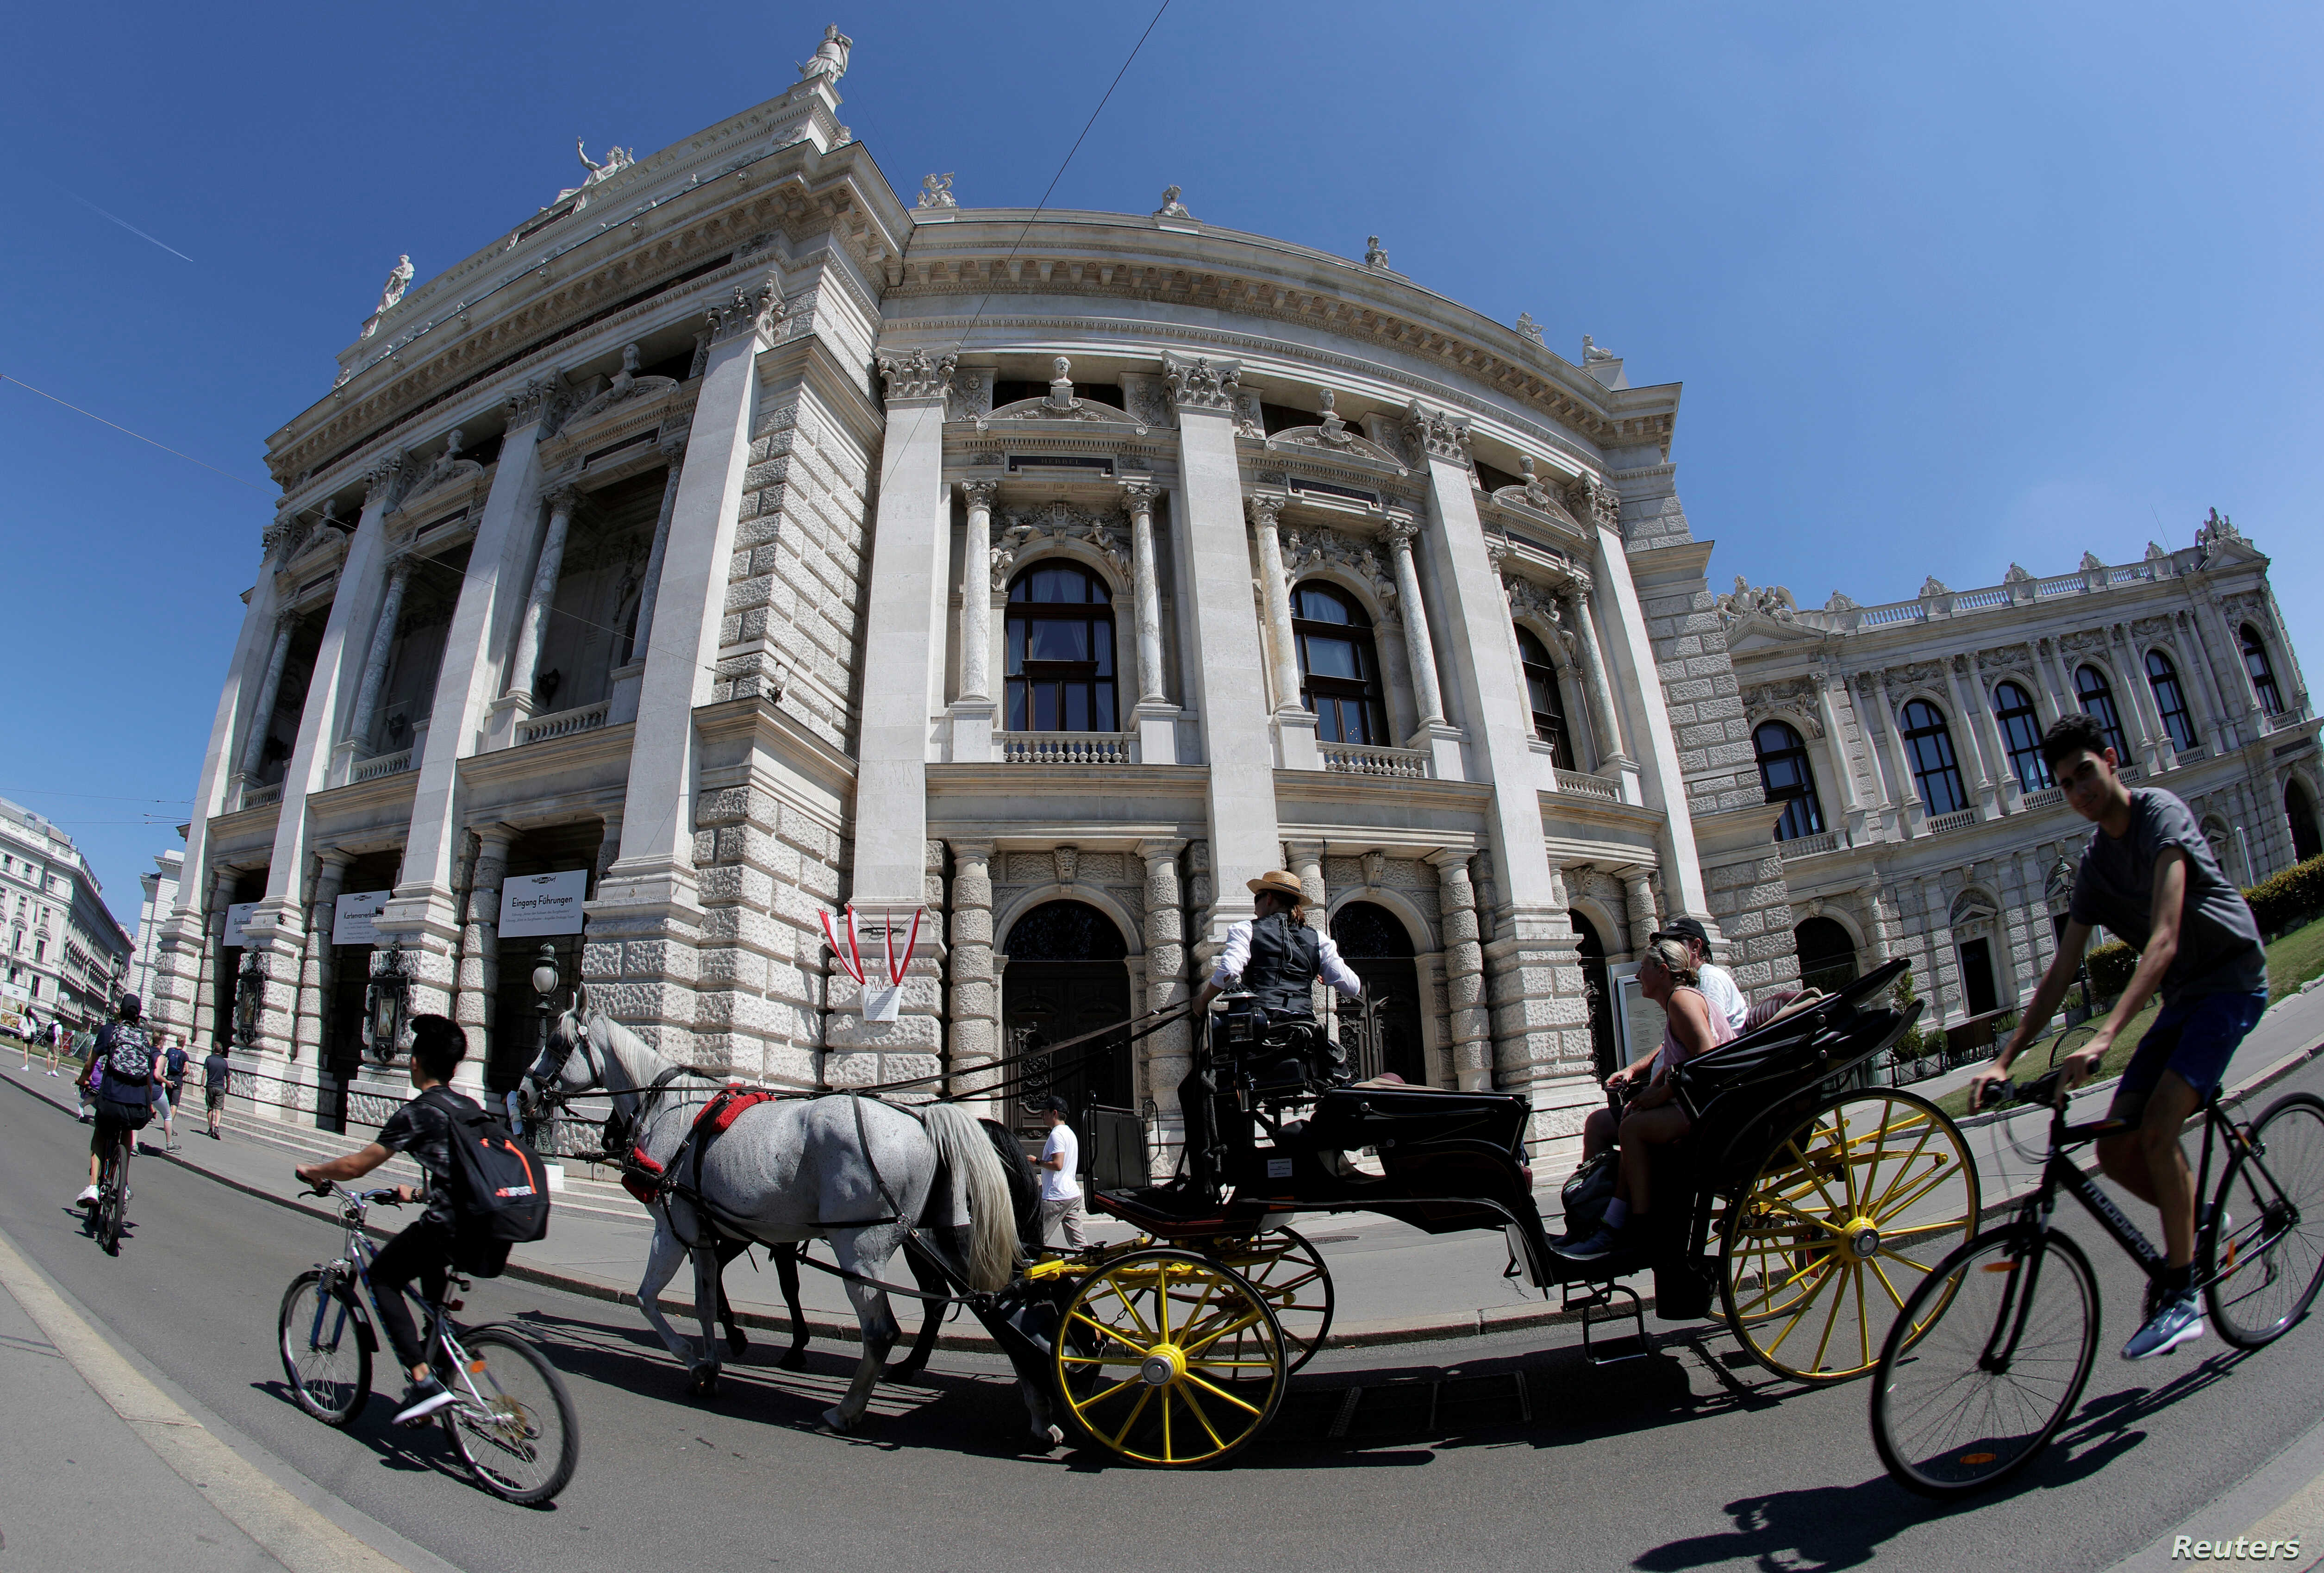 A traditional Fiaker horse carriage passes Burgtheater theatre in Vienna, Austria, Aug. 13, 2018.